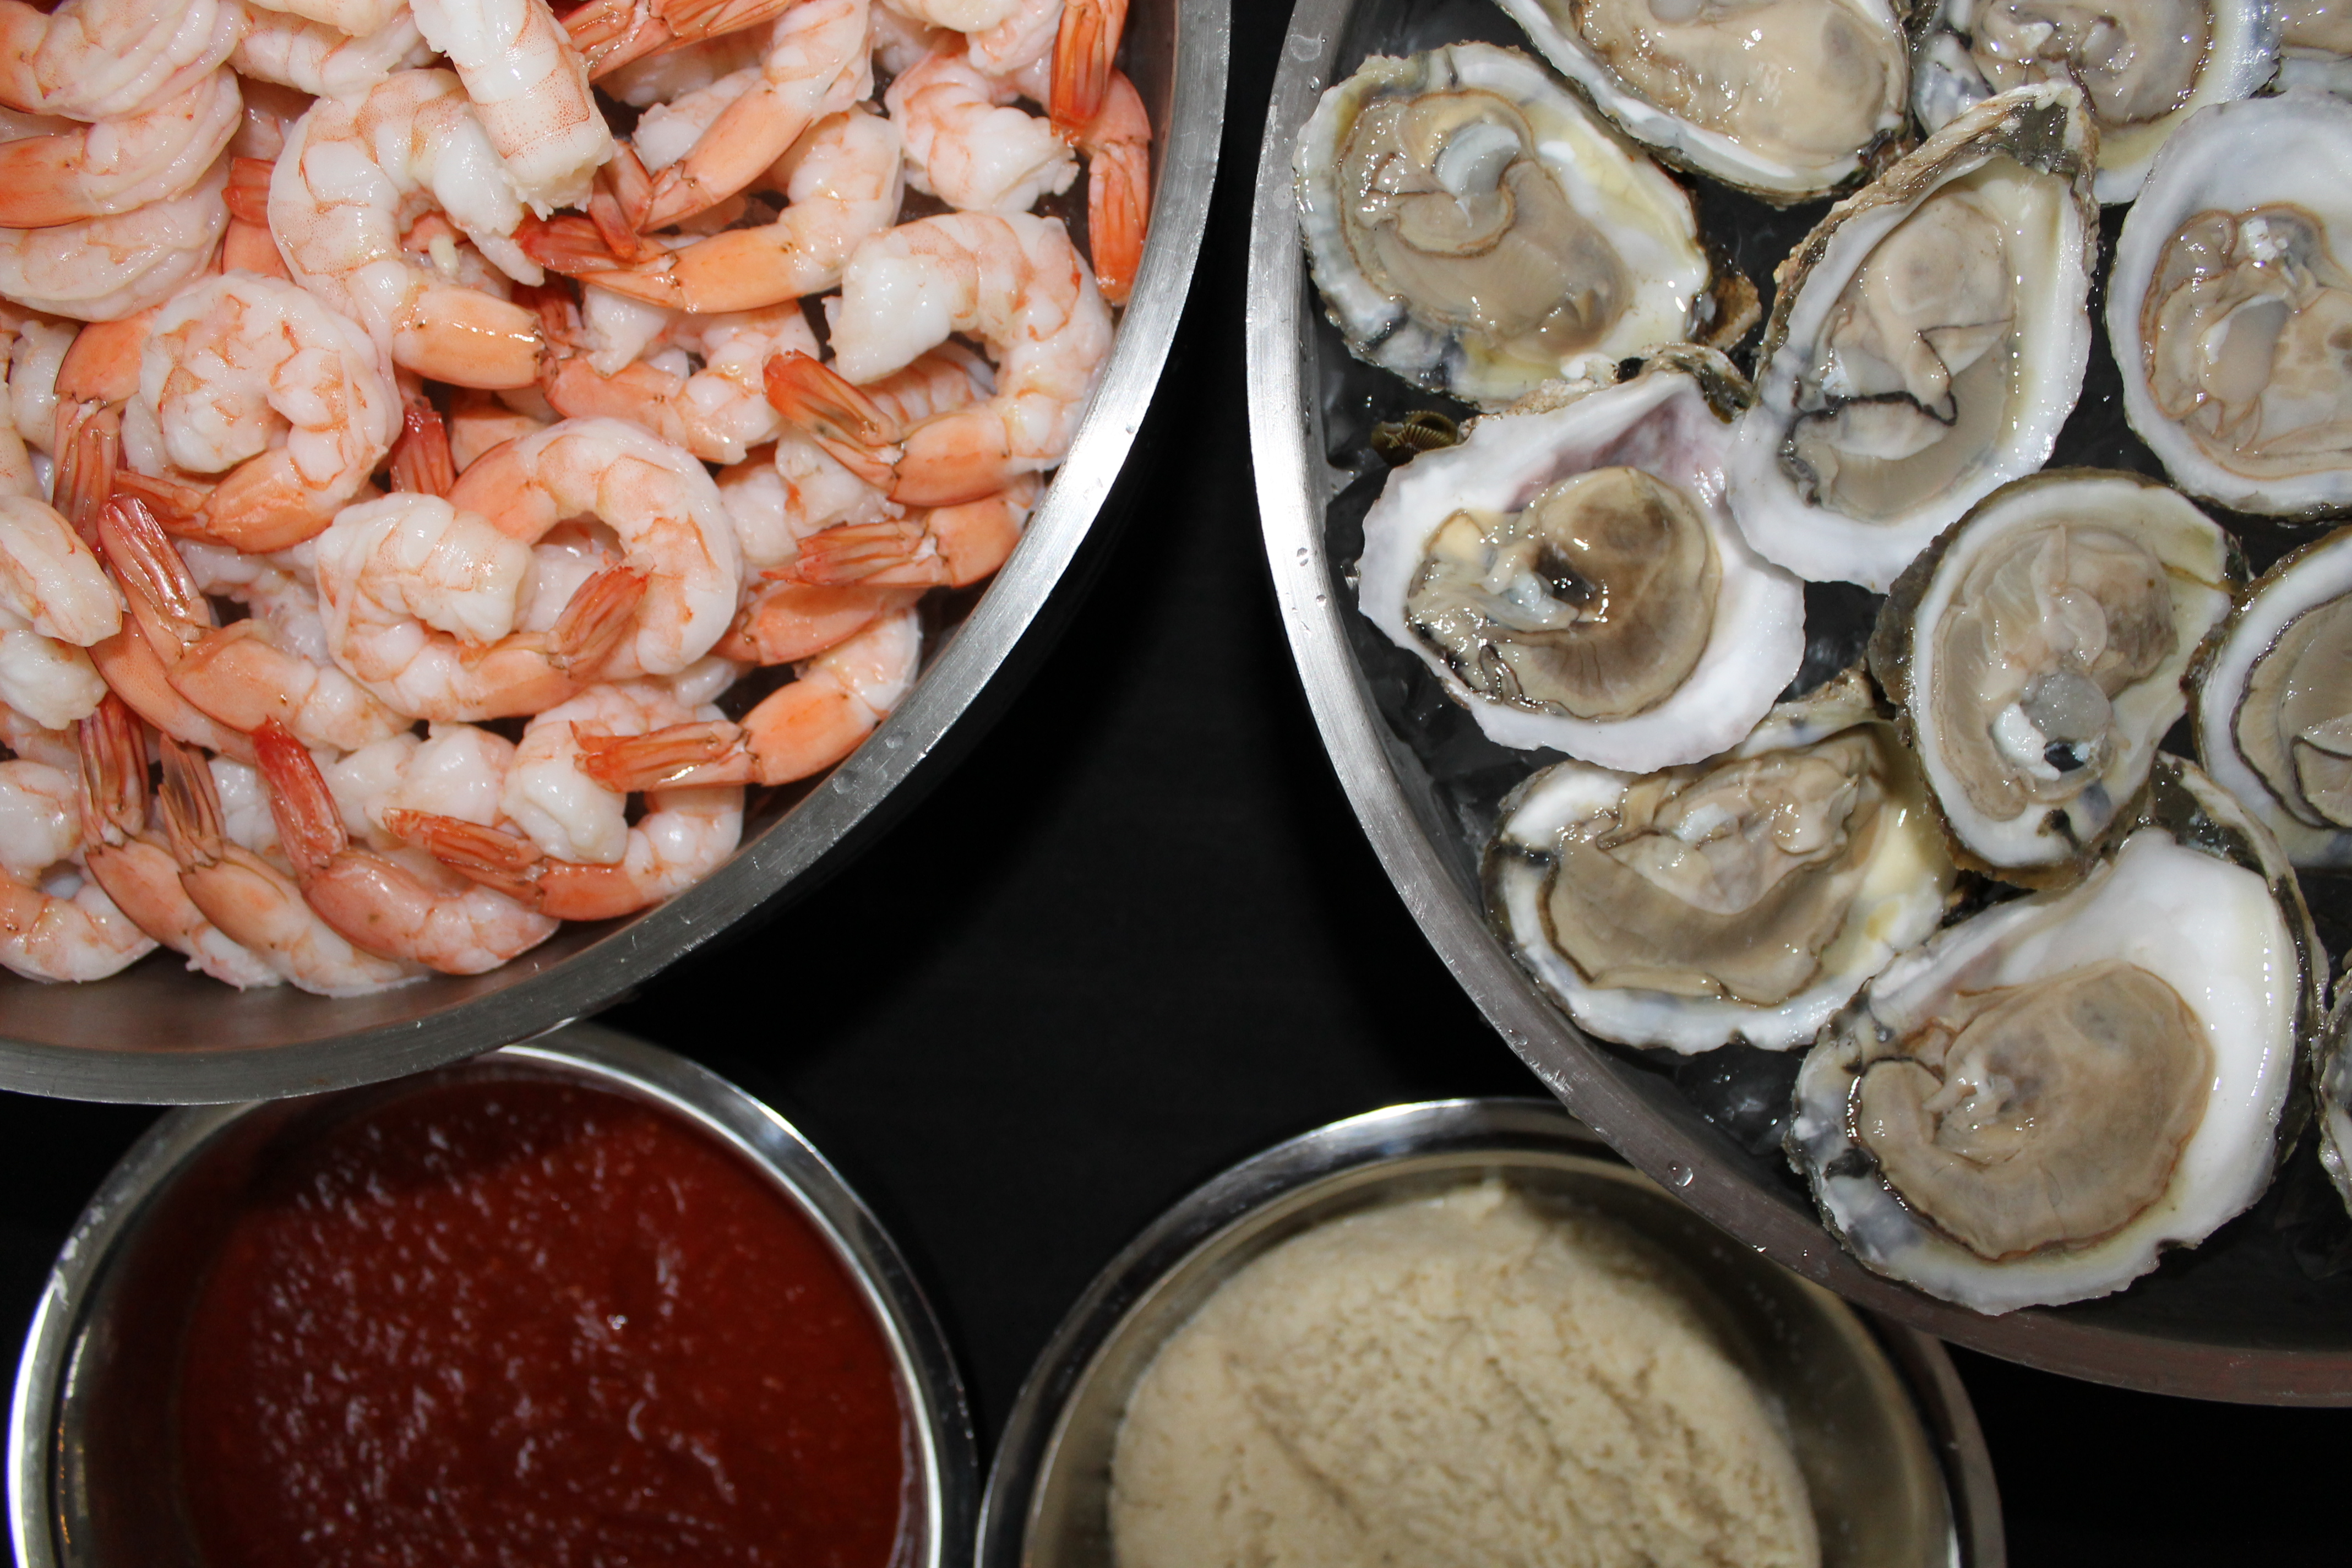 Bay Harbor Hotel's All-You-Can-Eat Brunch